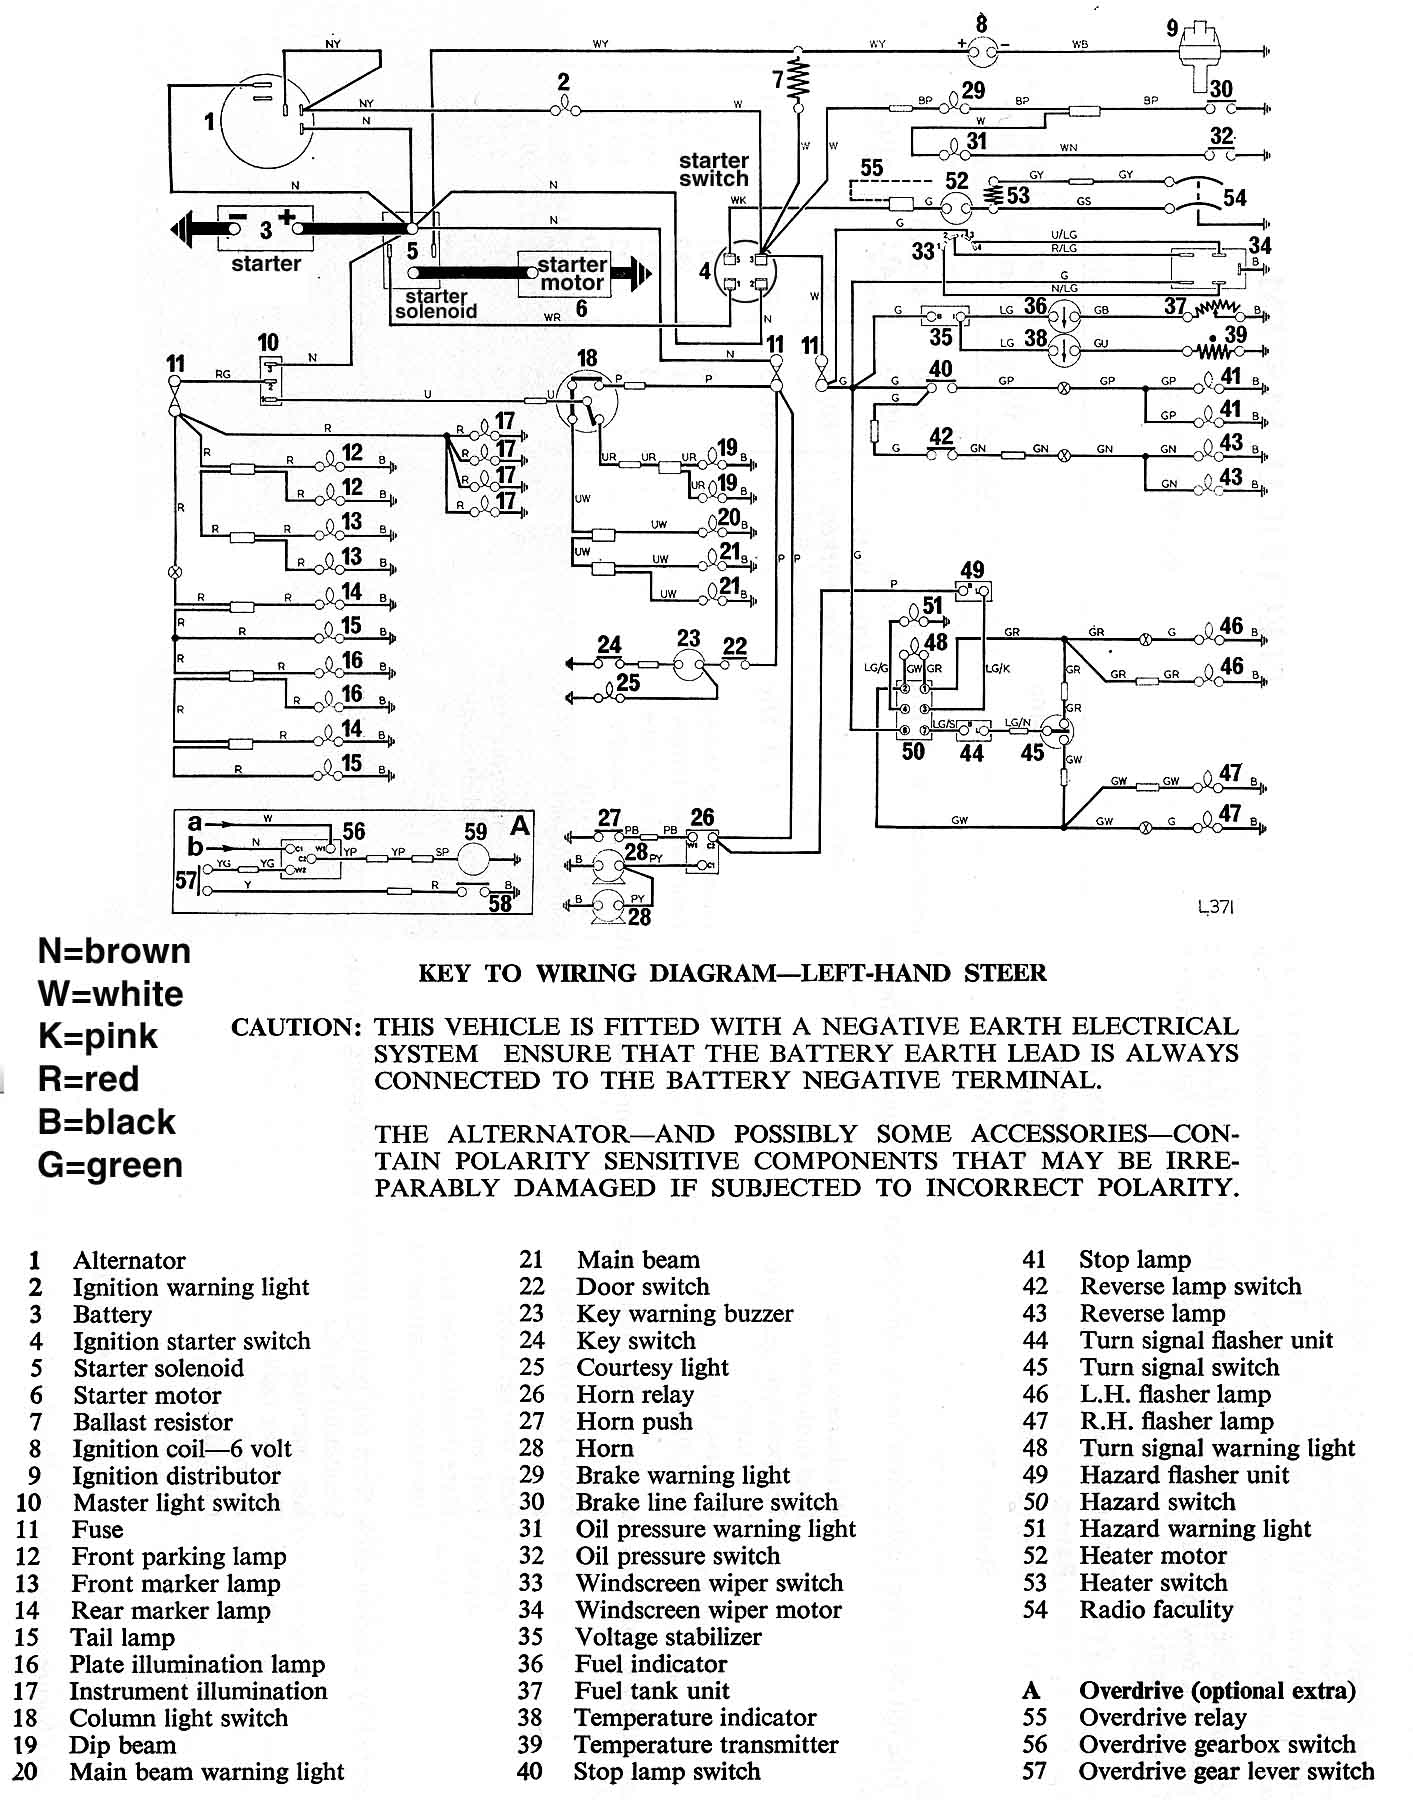 MKIVwire mk4 wiring diagram mk4 tdi wiring diagram \u2022 wiring diagrams j Multi Speed Blower Motor Wiring at mifinder.co